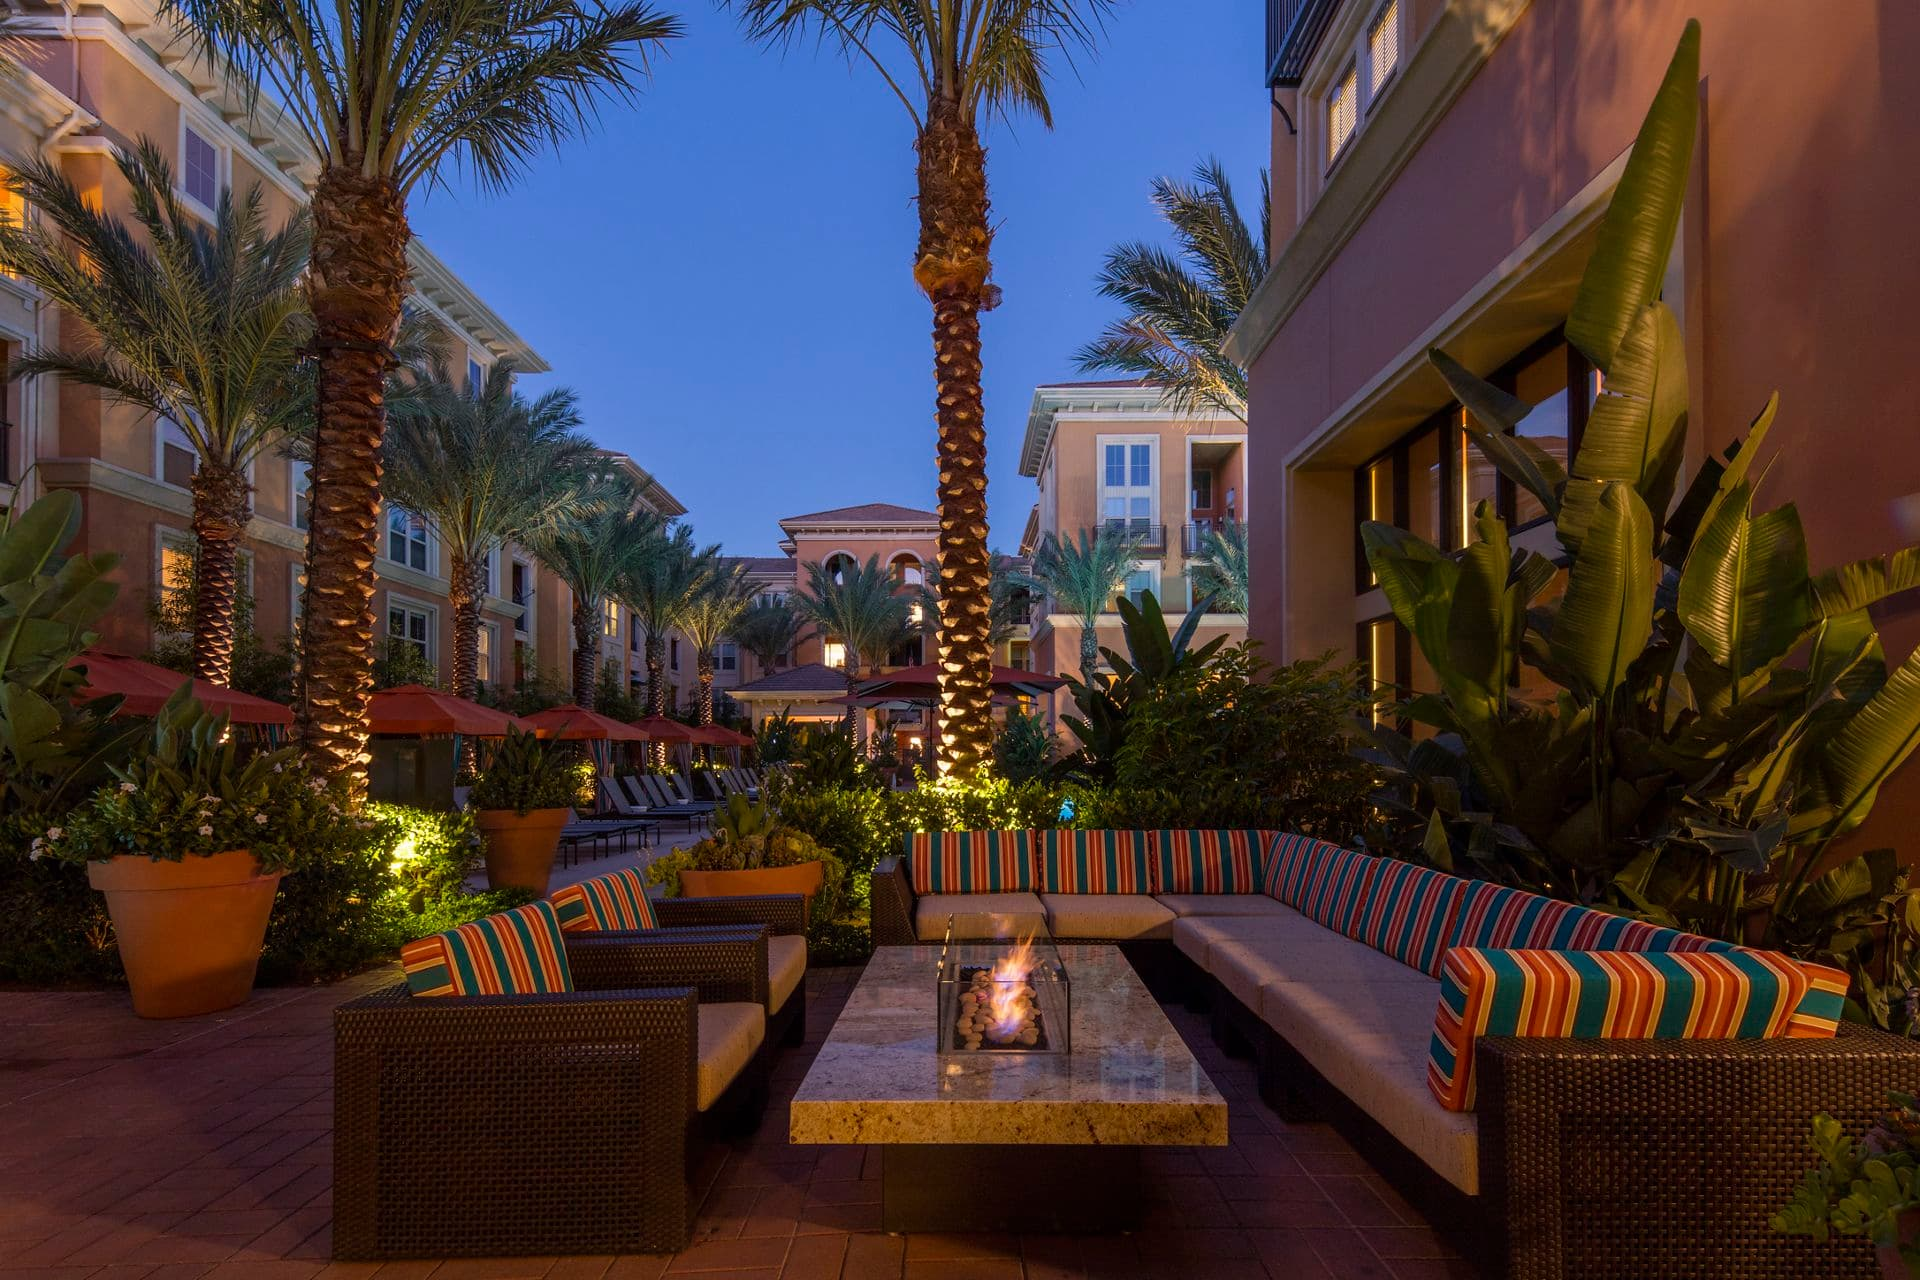 Exterior view of courtyard at Gateway Apartment Homes in Orange, CA.